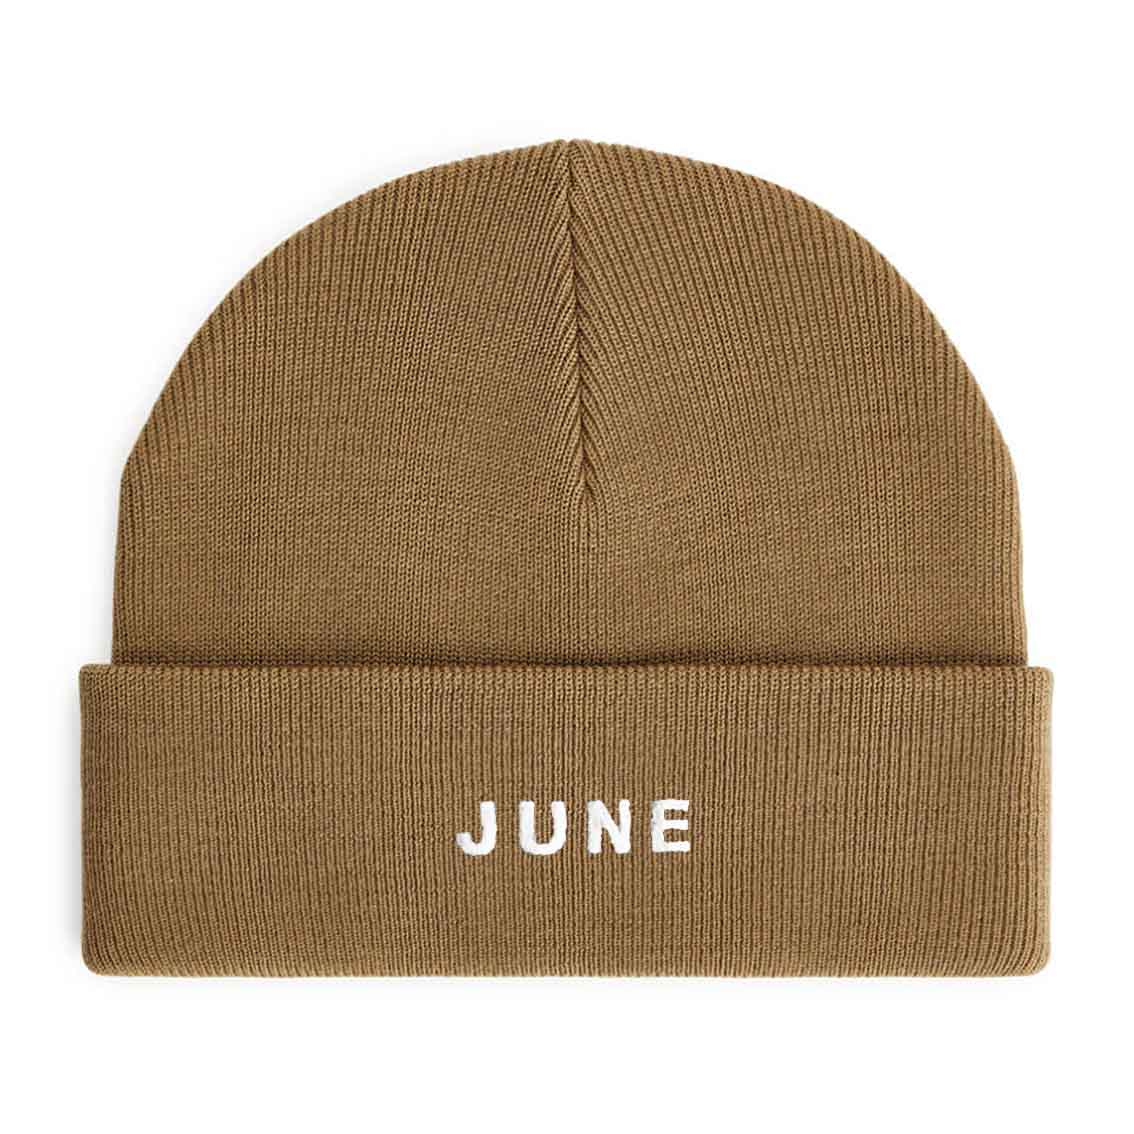 June - Puff Logo Beanie - Beige / White